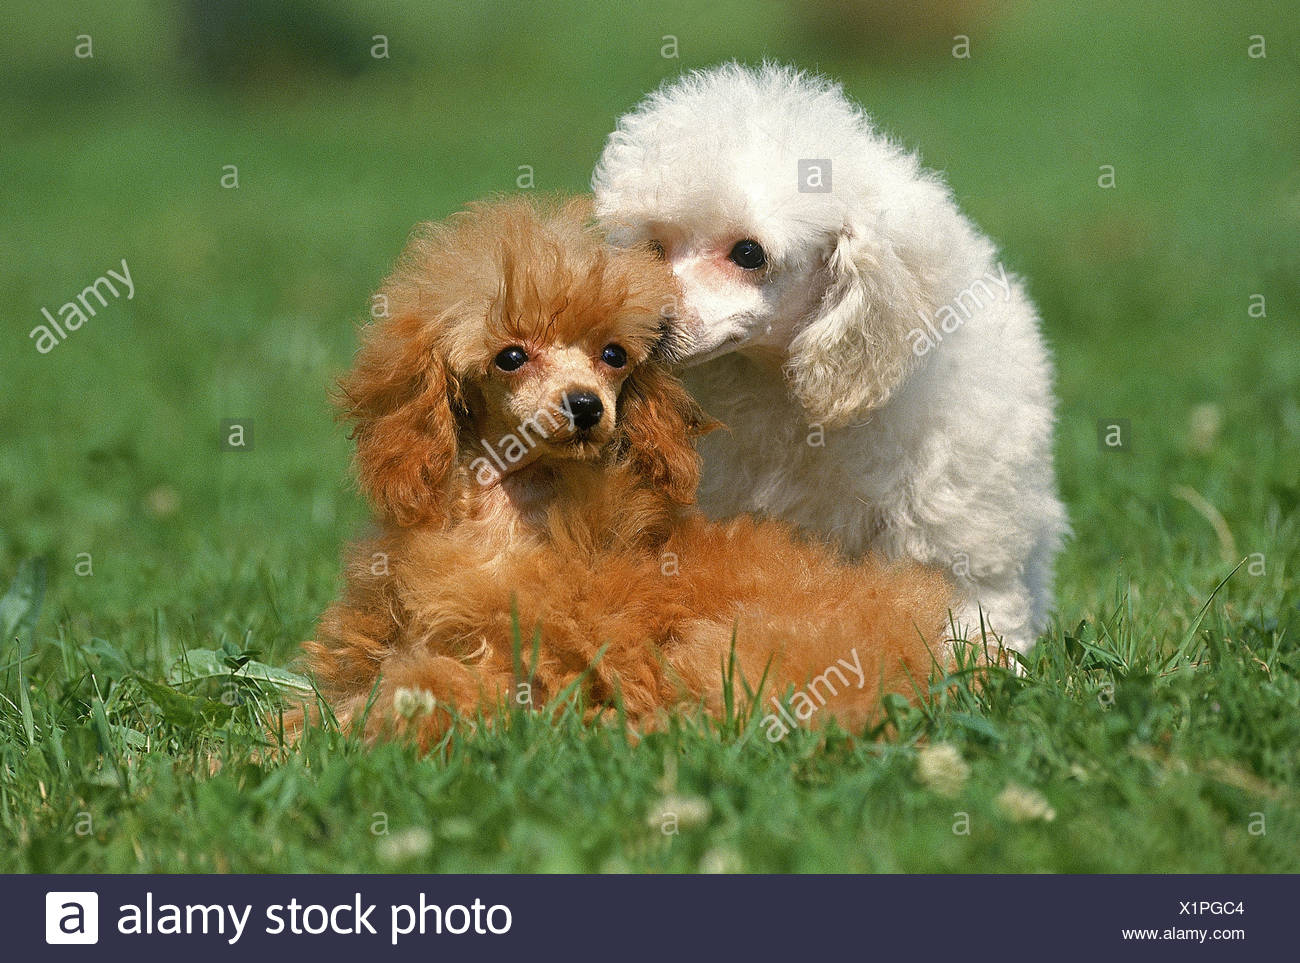 WHITE AND ABRICOT TOY POODLES - Stock Image